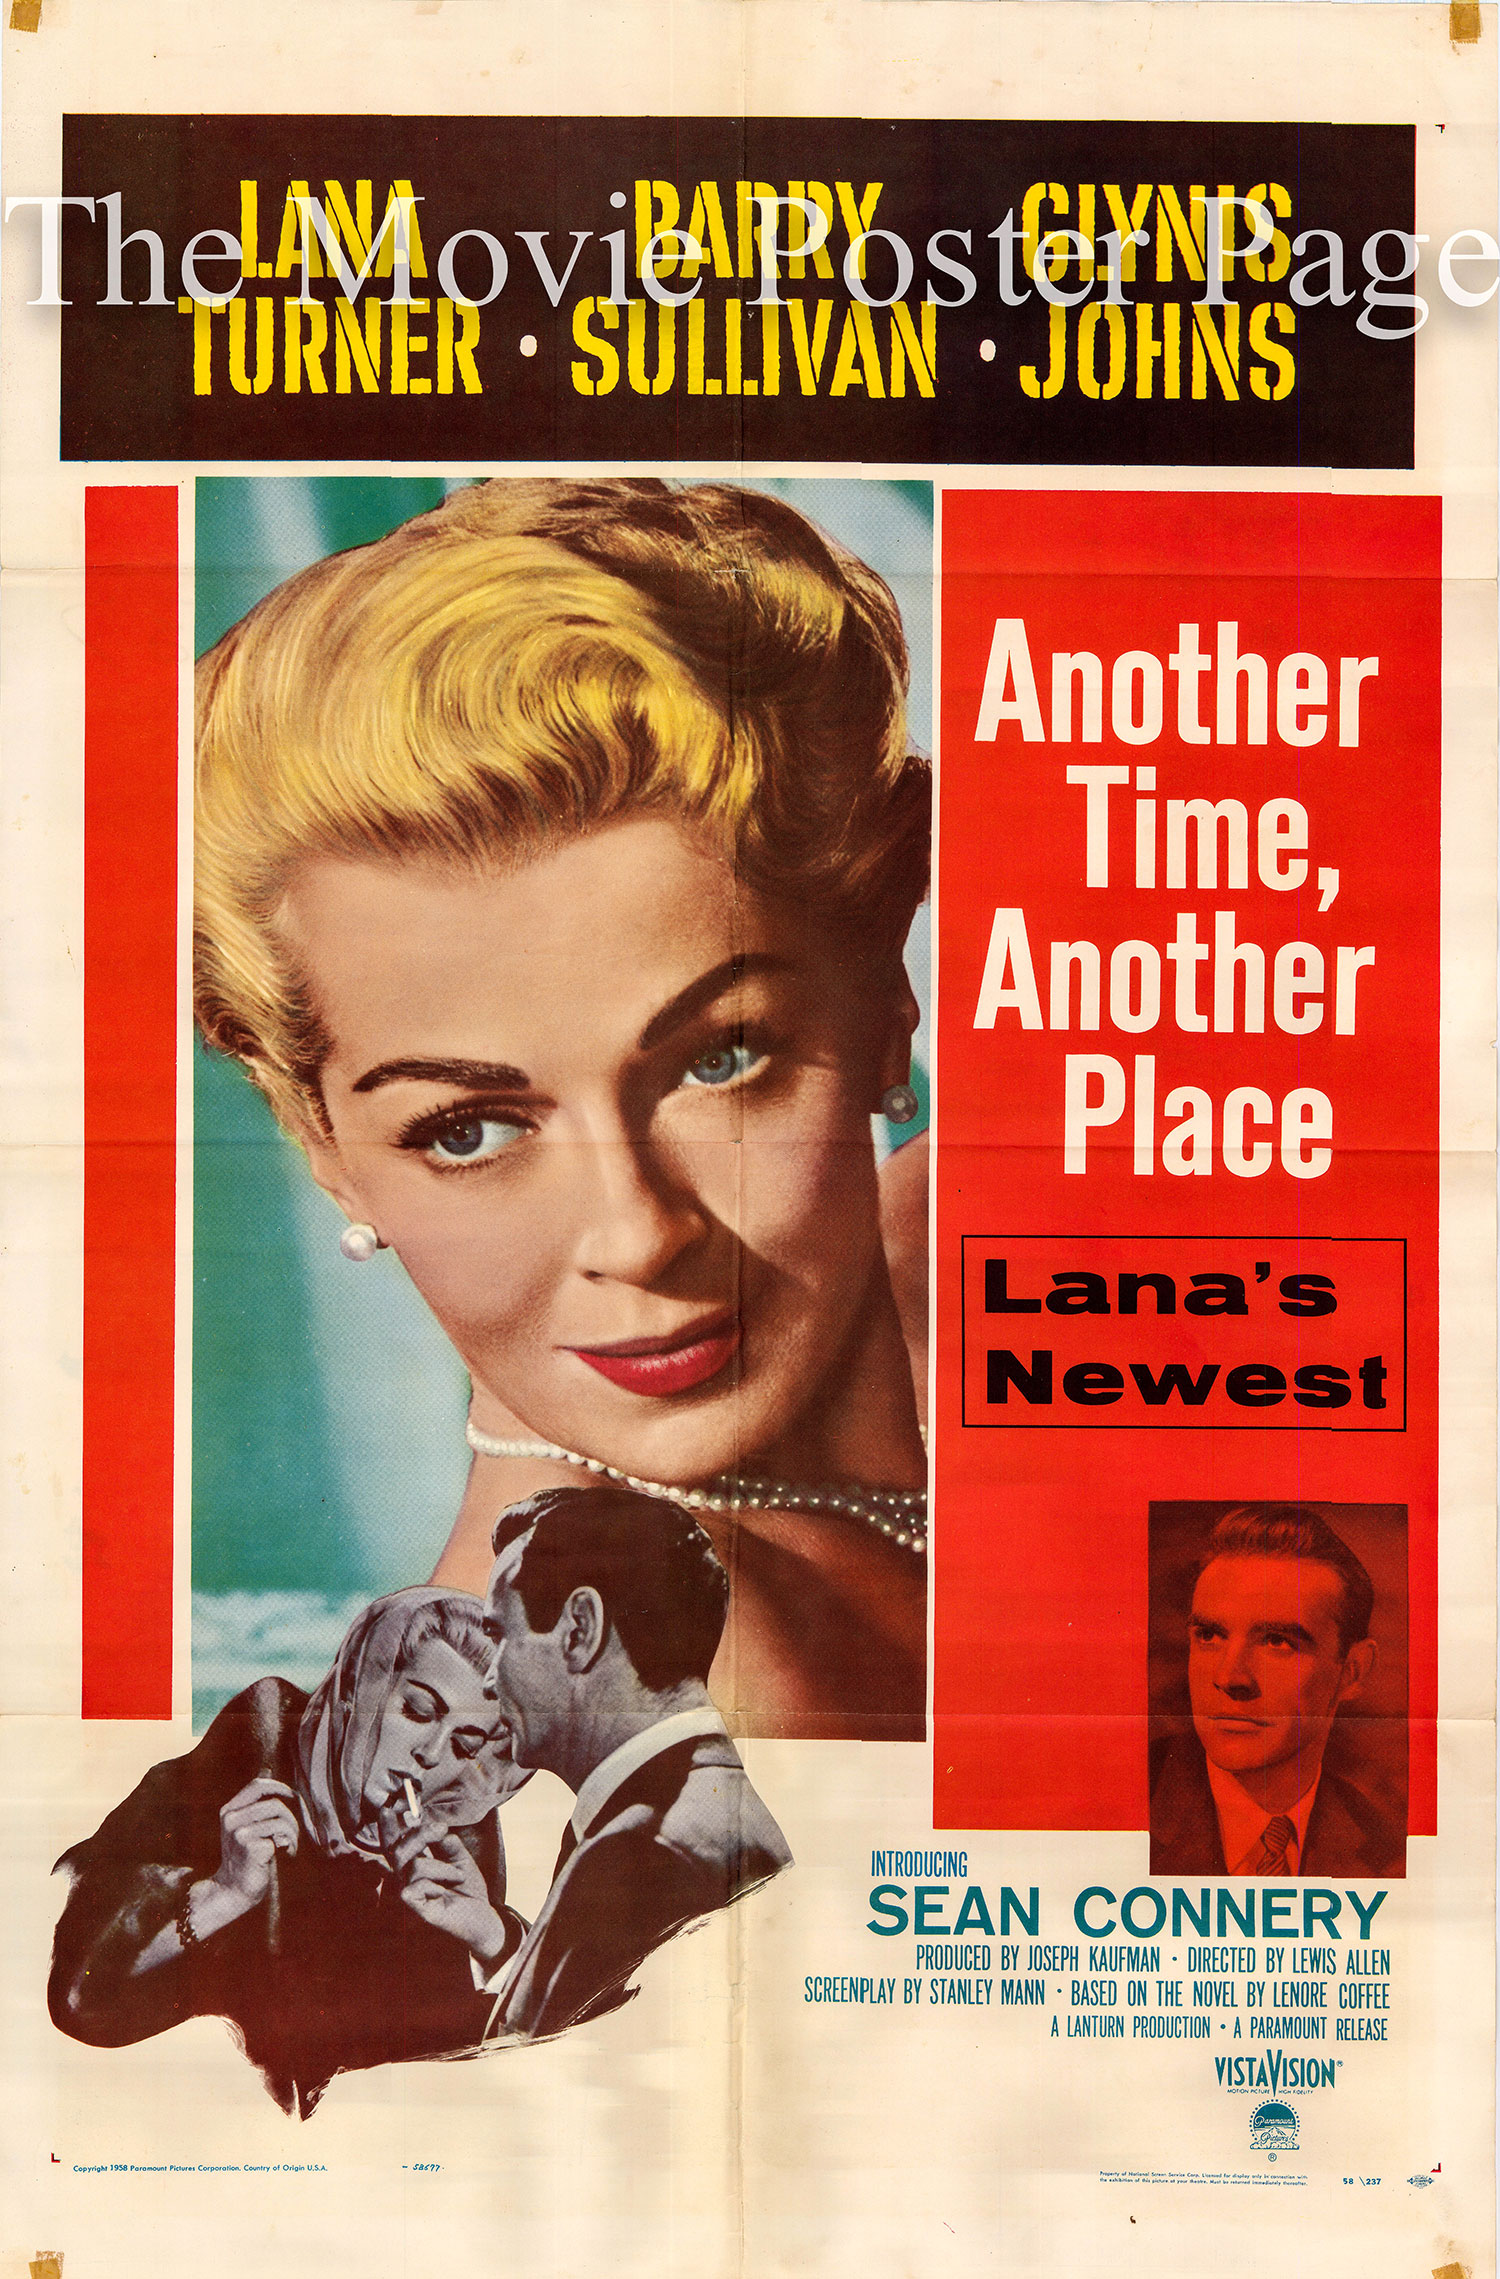 Pictured is a US one-sheet promotional poster for the 1958 Lews Allen film Another Time Another Place starring Lana Turner and Sean Connery.